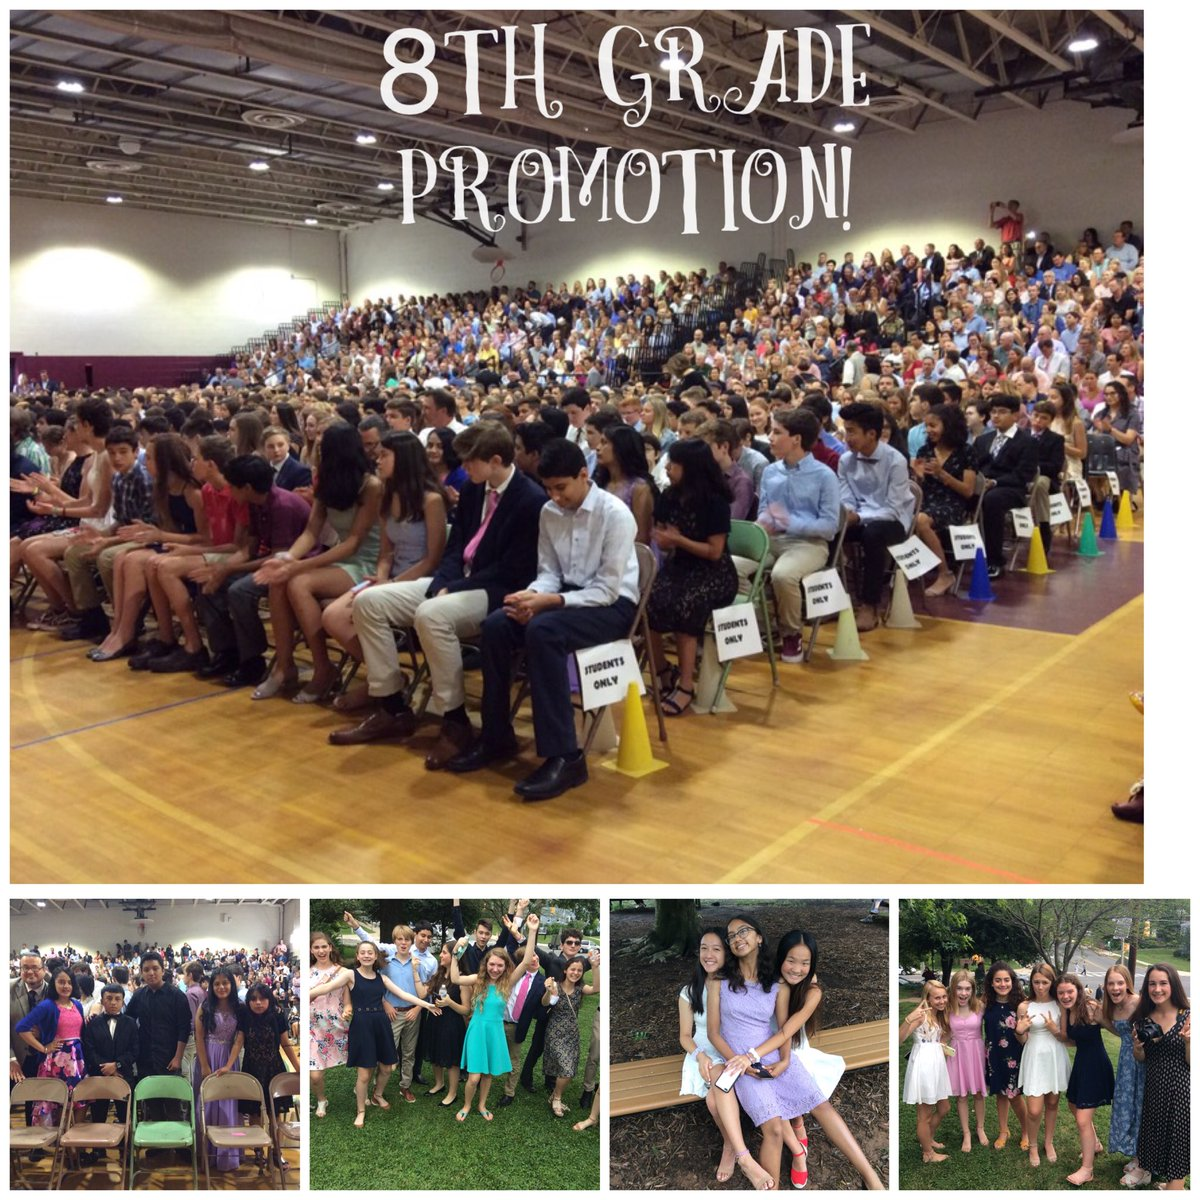 RT <a target='_blank' href='http://twitter.com/SwansonAdmirals'>@SwansonAdmirals</a>: Proud of our outgoing 8th Graders! Onwards and Upwards! <a target='_blank' href='https://t.co/gVqdXWbSIu'>https://t.co/gVqdXWbSIu</a>